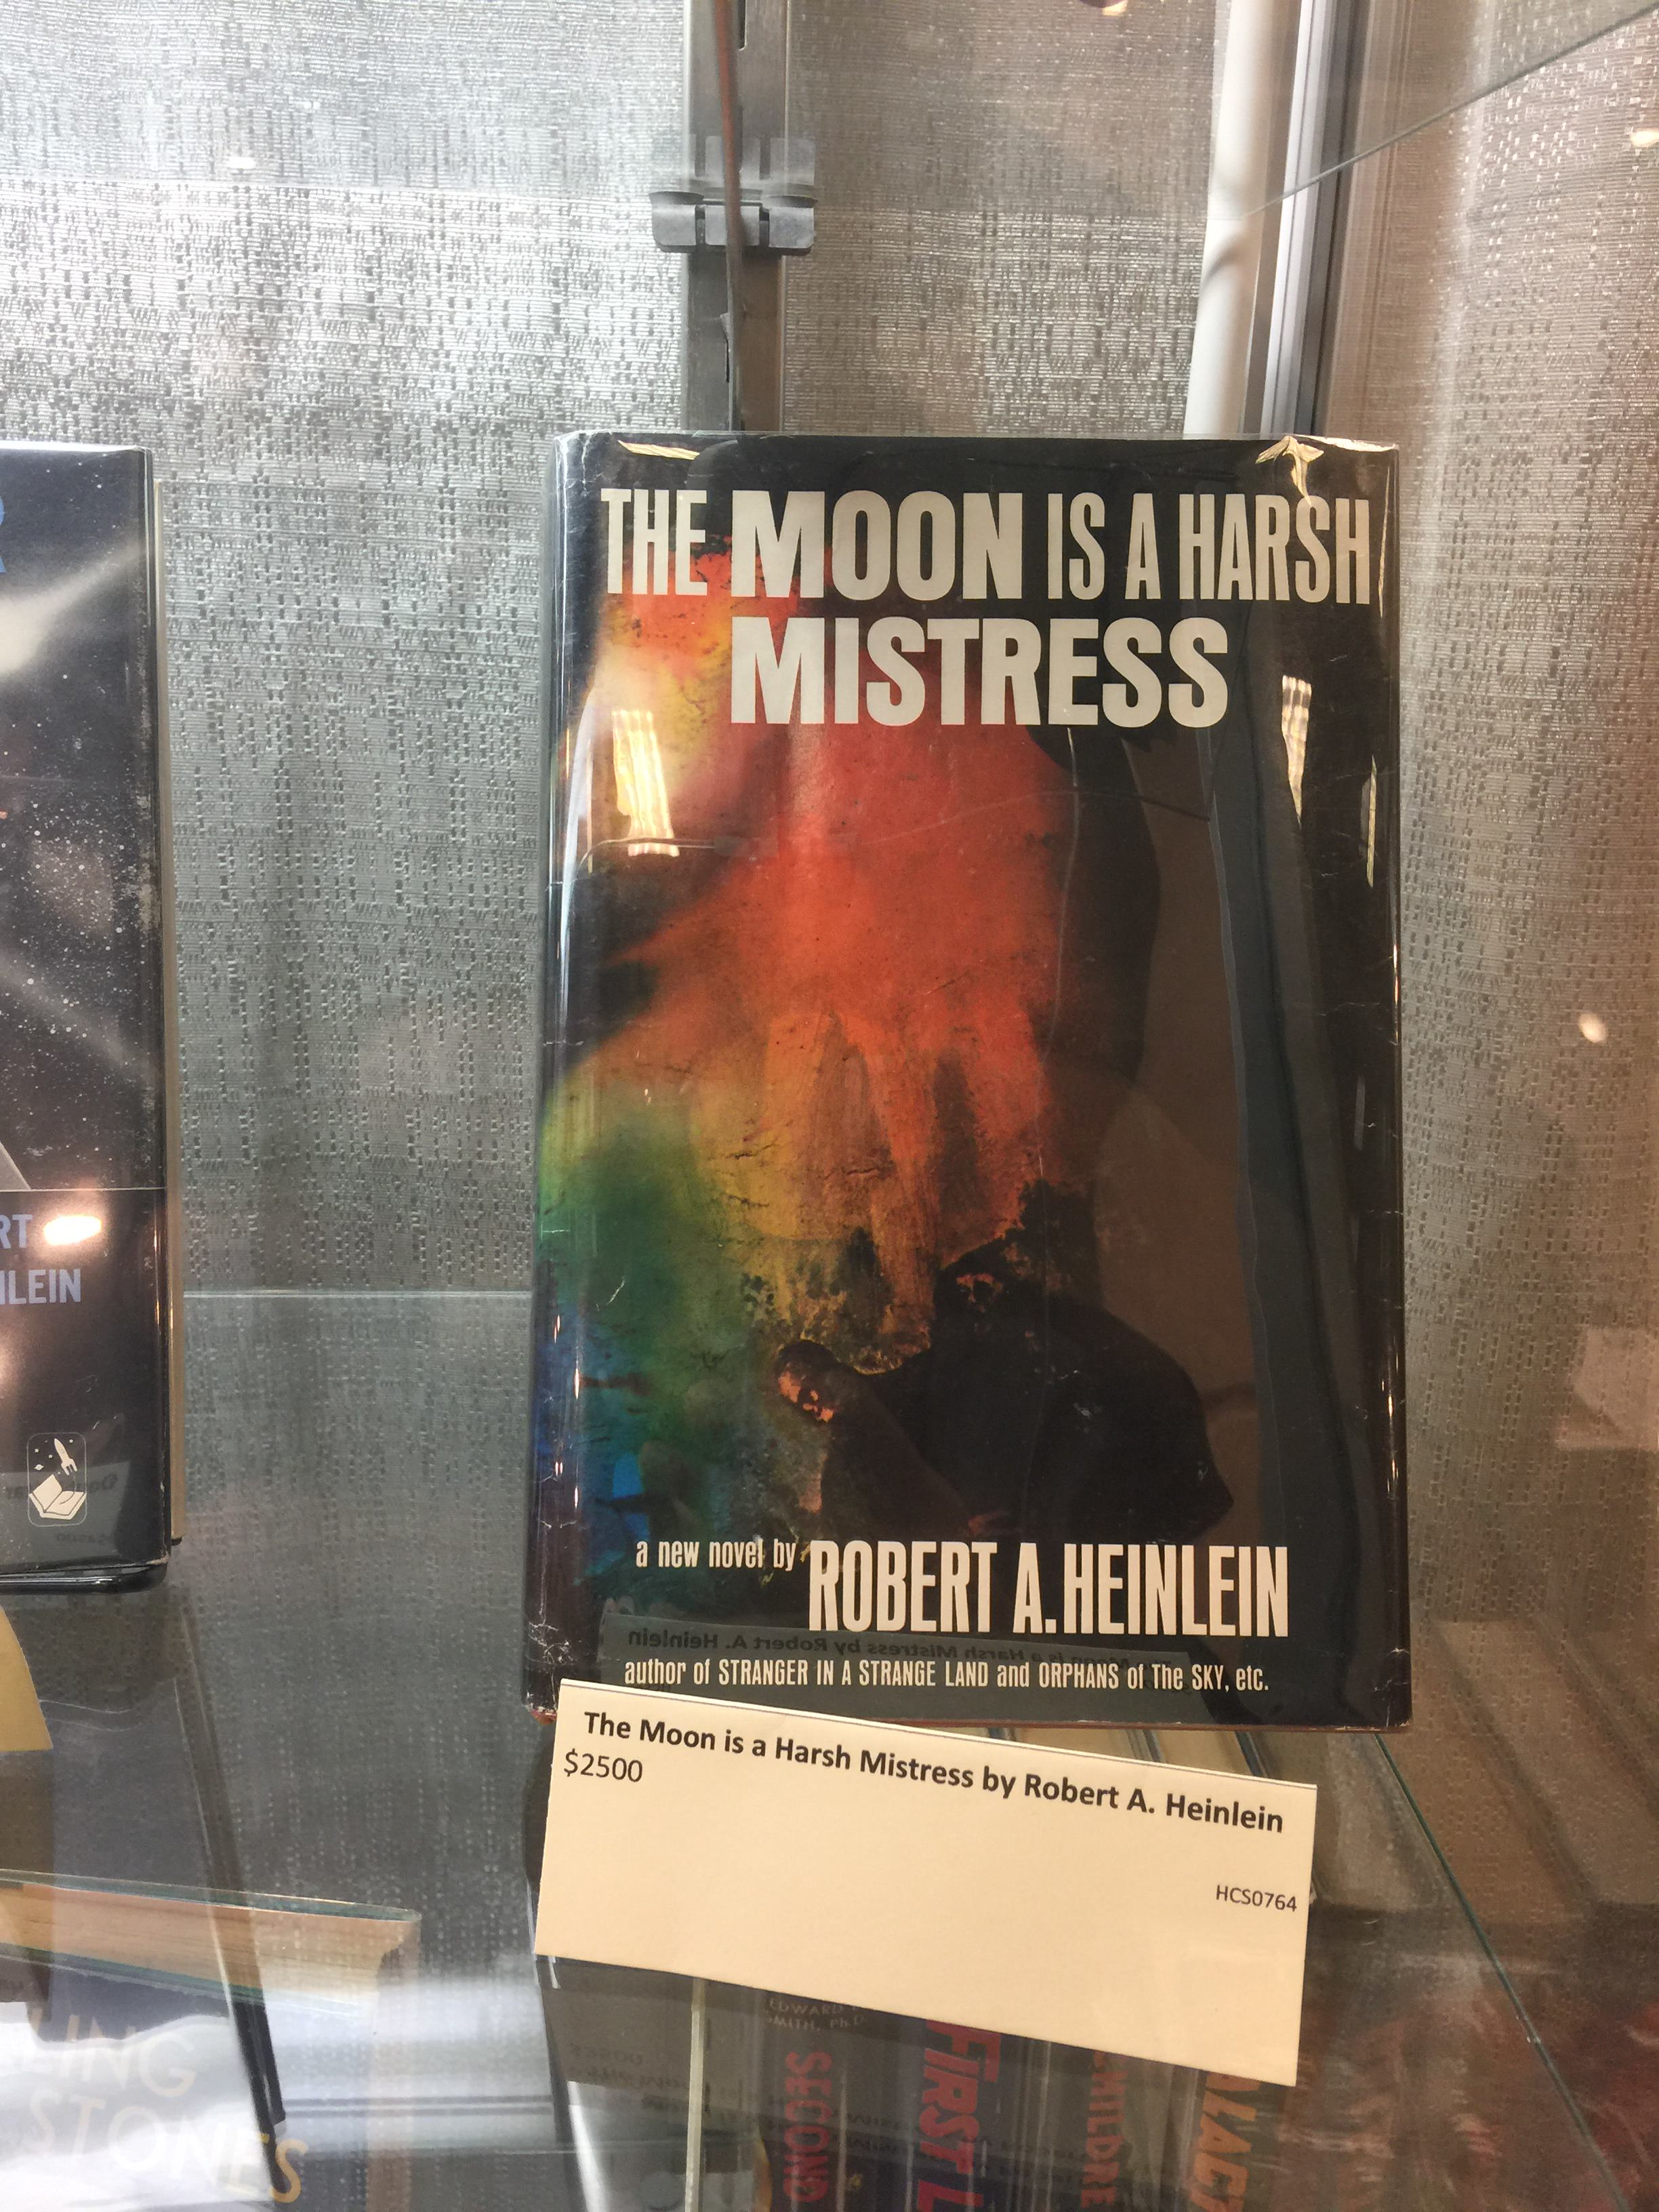 Robert A. Heinlein's The Moon is a harsh mistress (Originally serialized in Worlds of If)